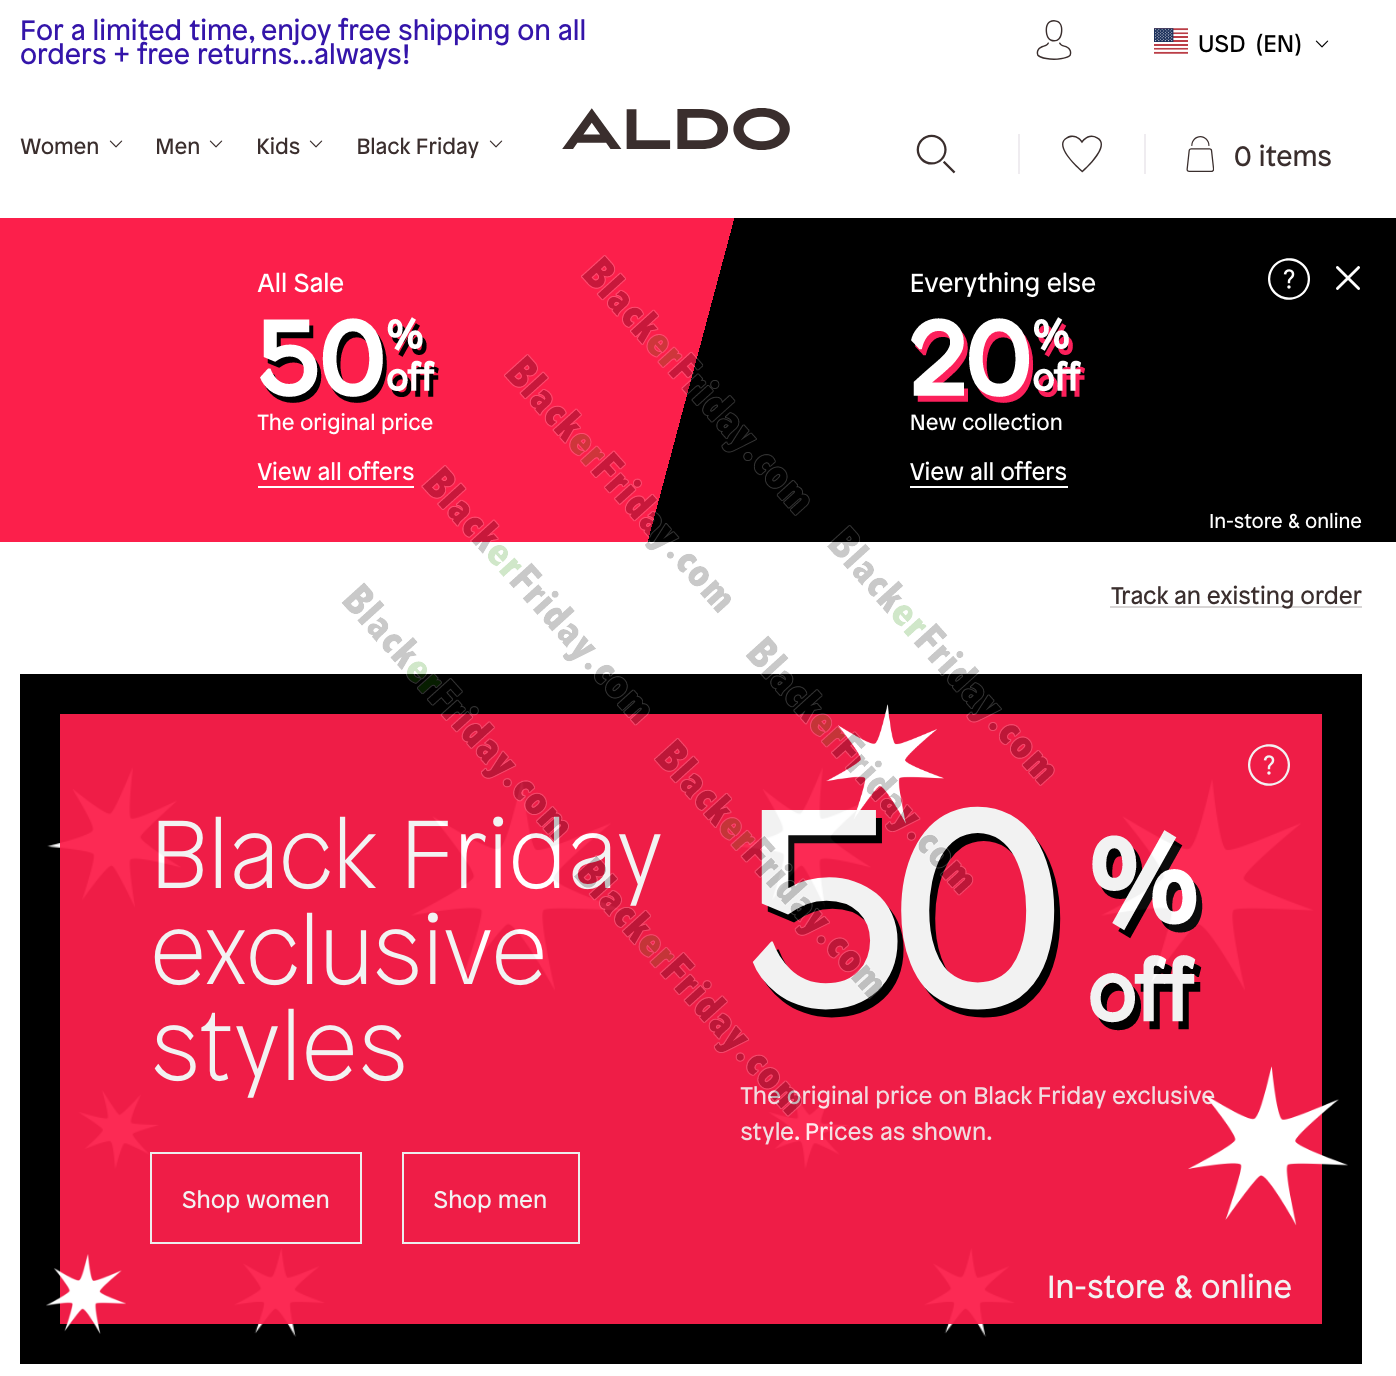 aldo coupons march 2019 cheap online